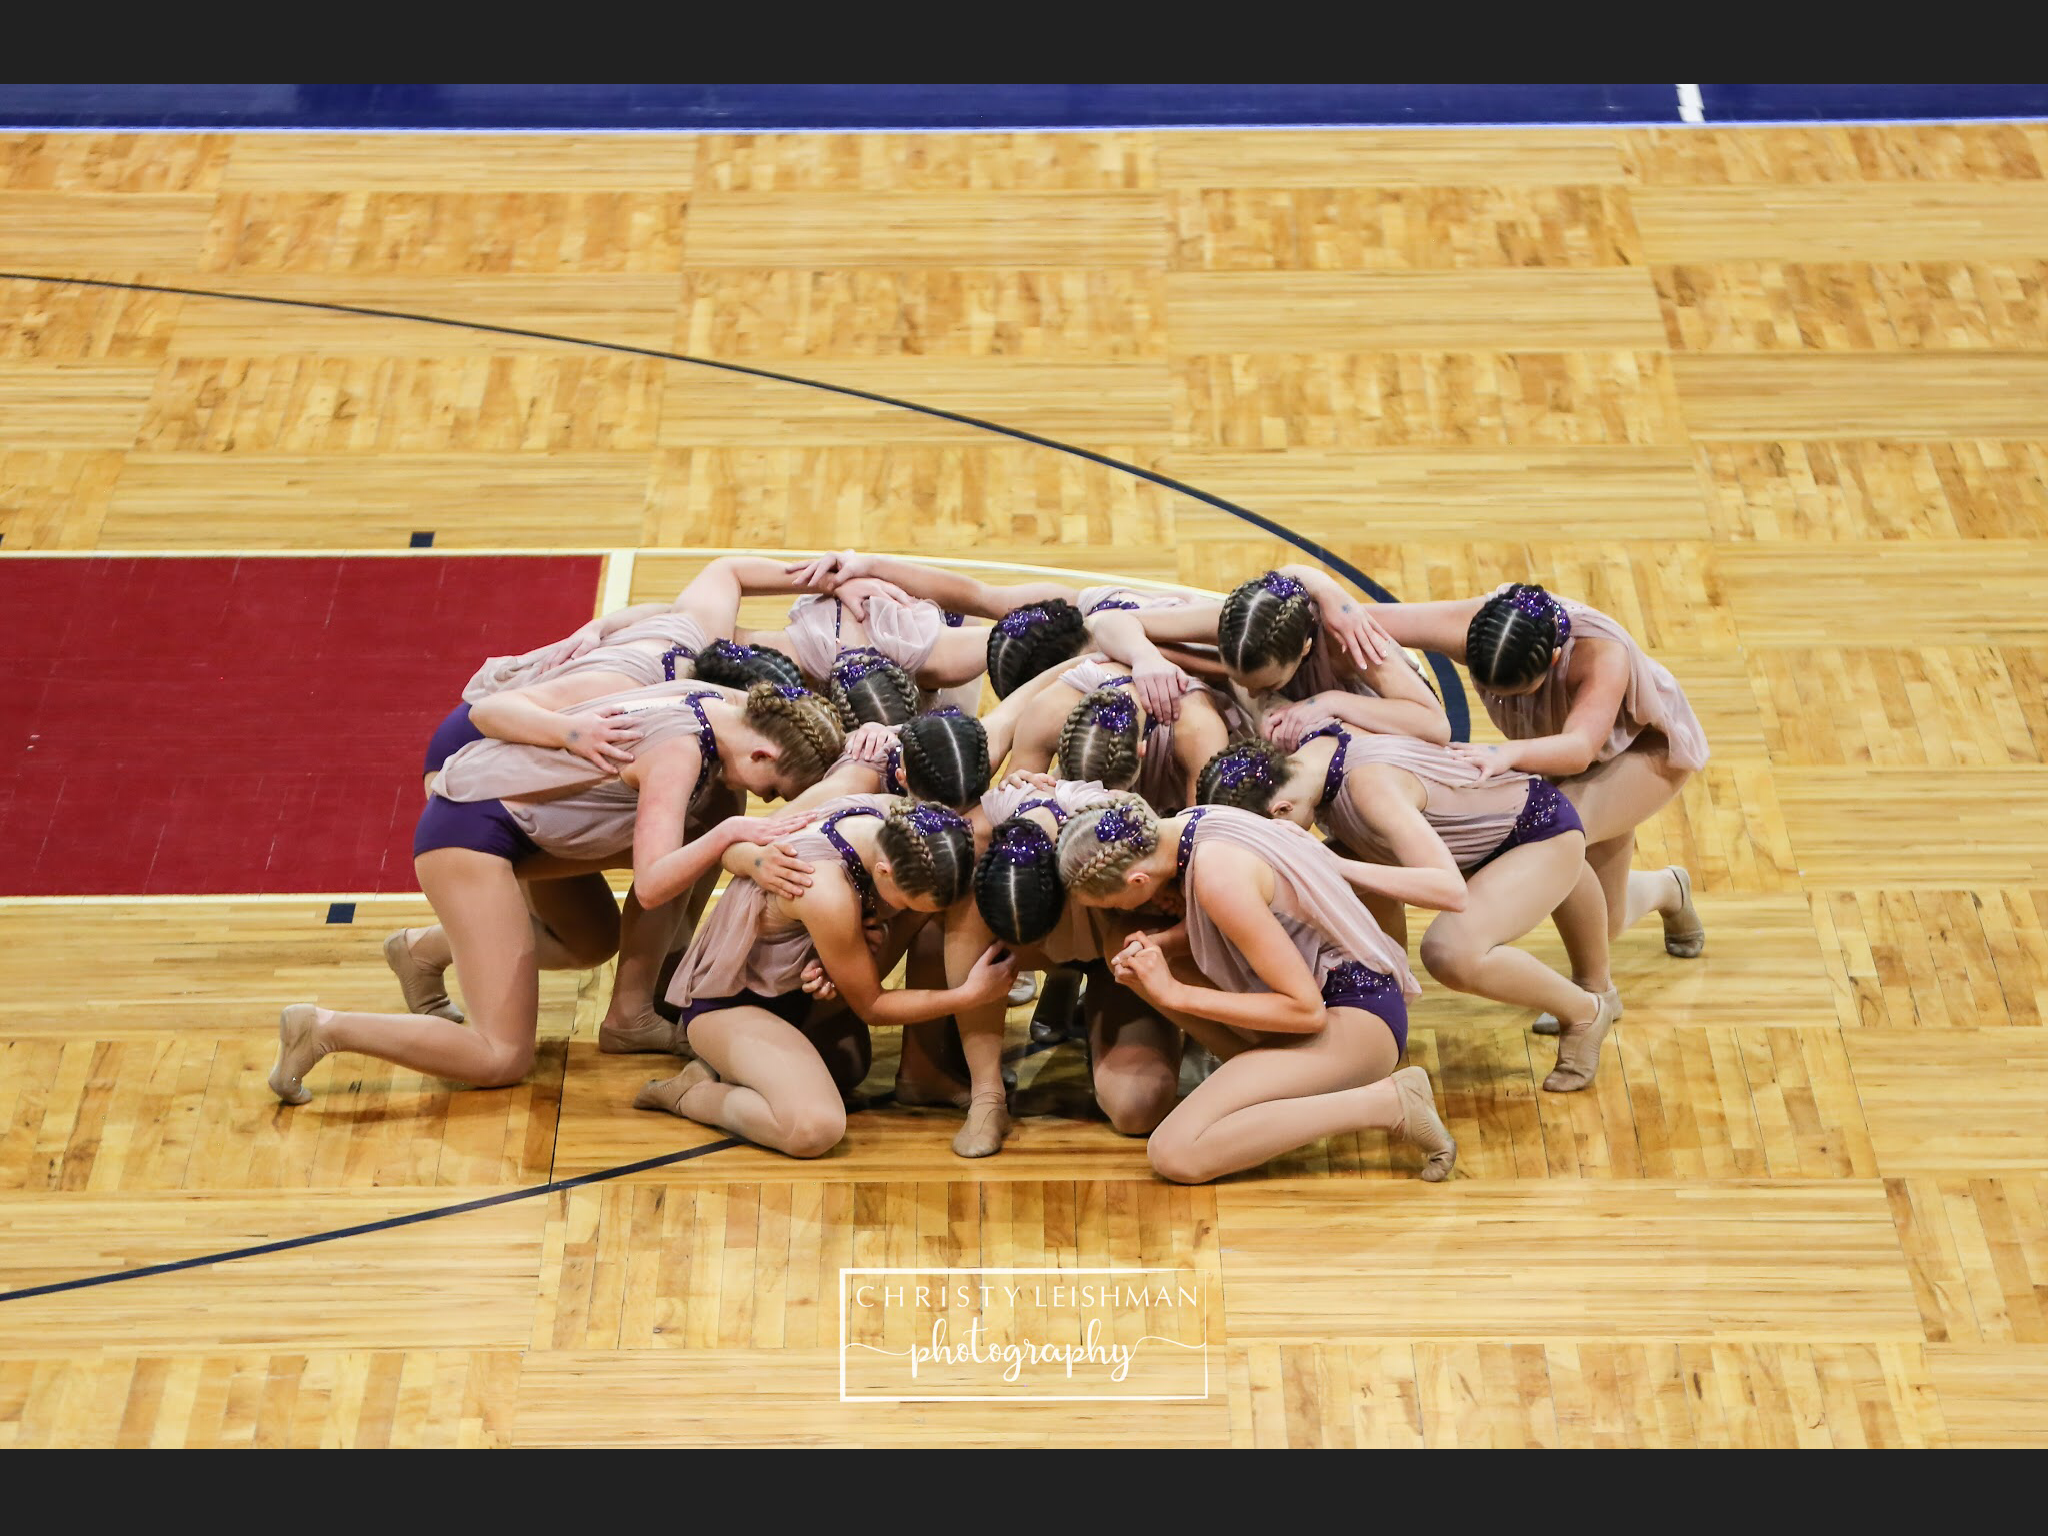 Photo By: Christy Leishman  As the team finishes their State performance, the girls end in a huddle on the floor, showing their emotion.